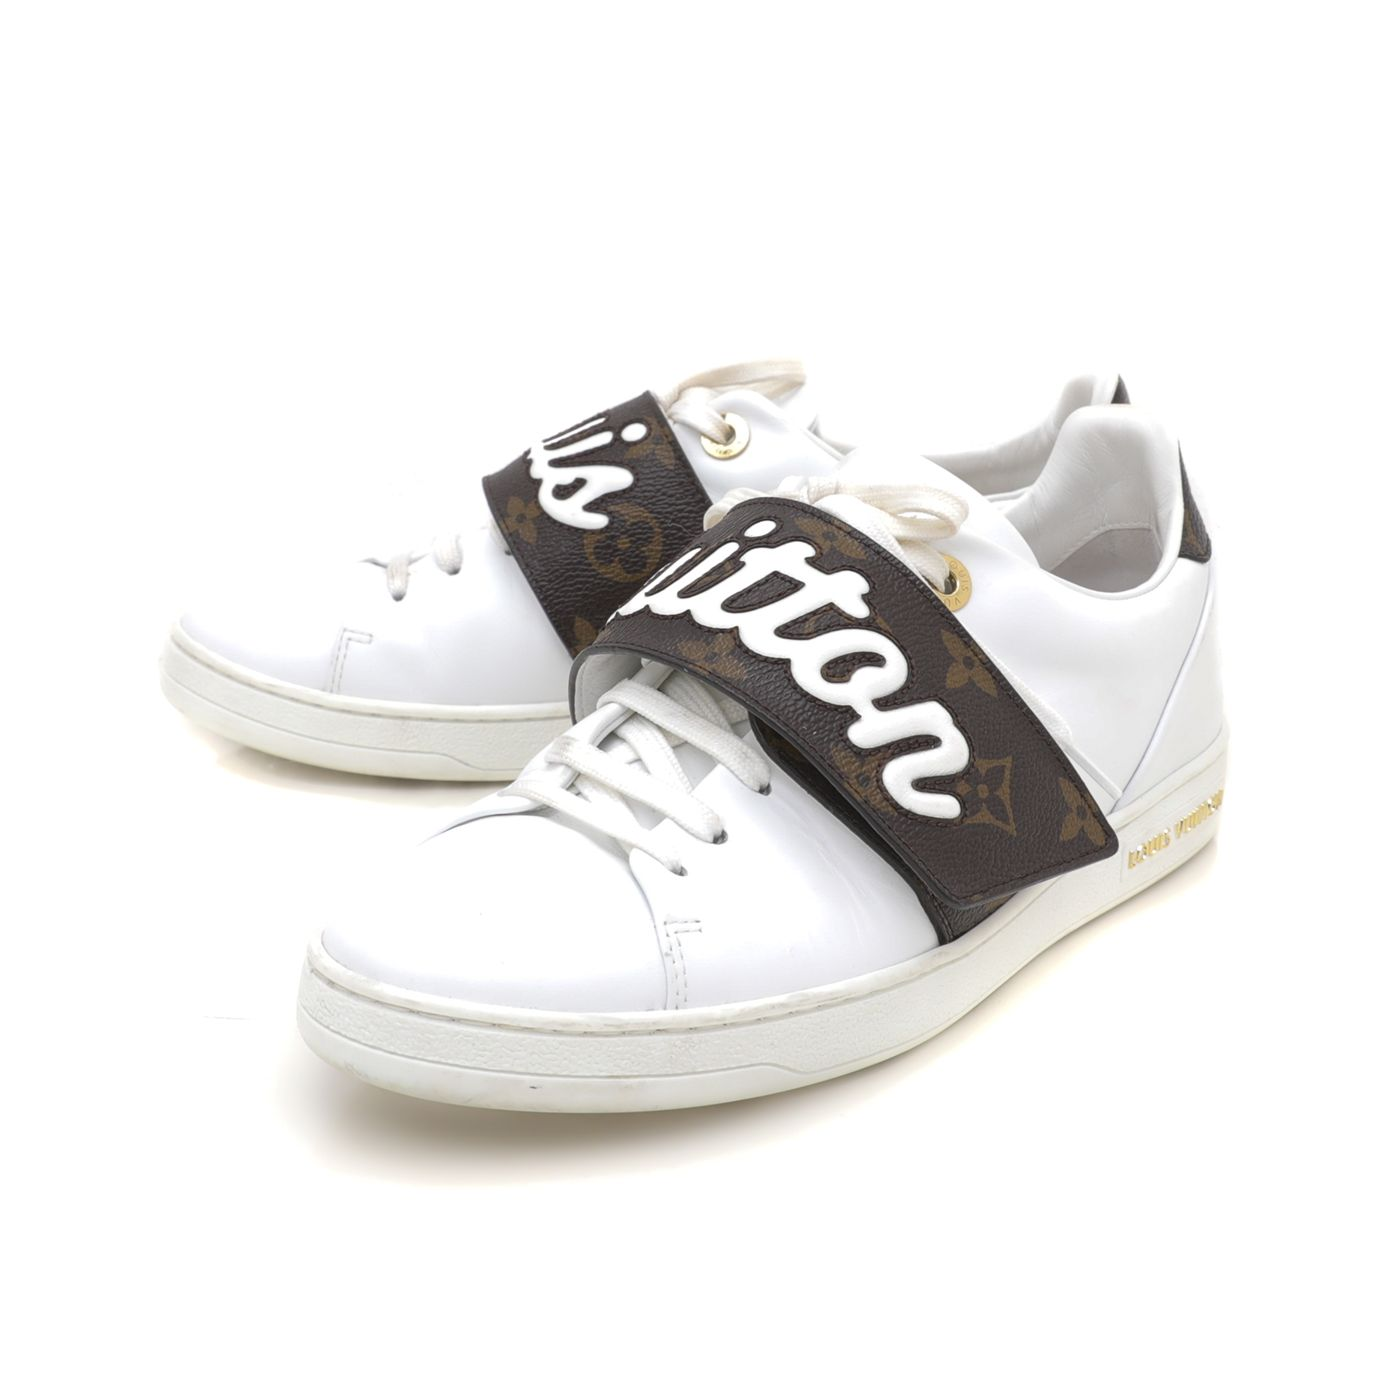 Louis Vuitton White Monogram Frontrow Sneakers 38